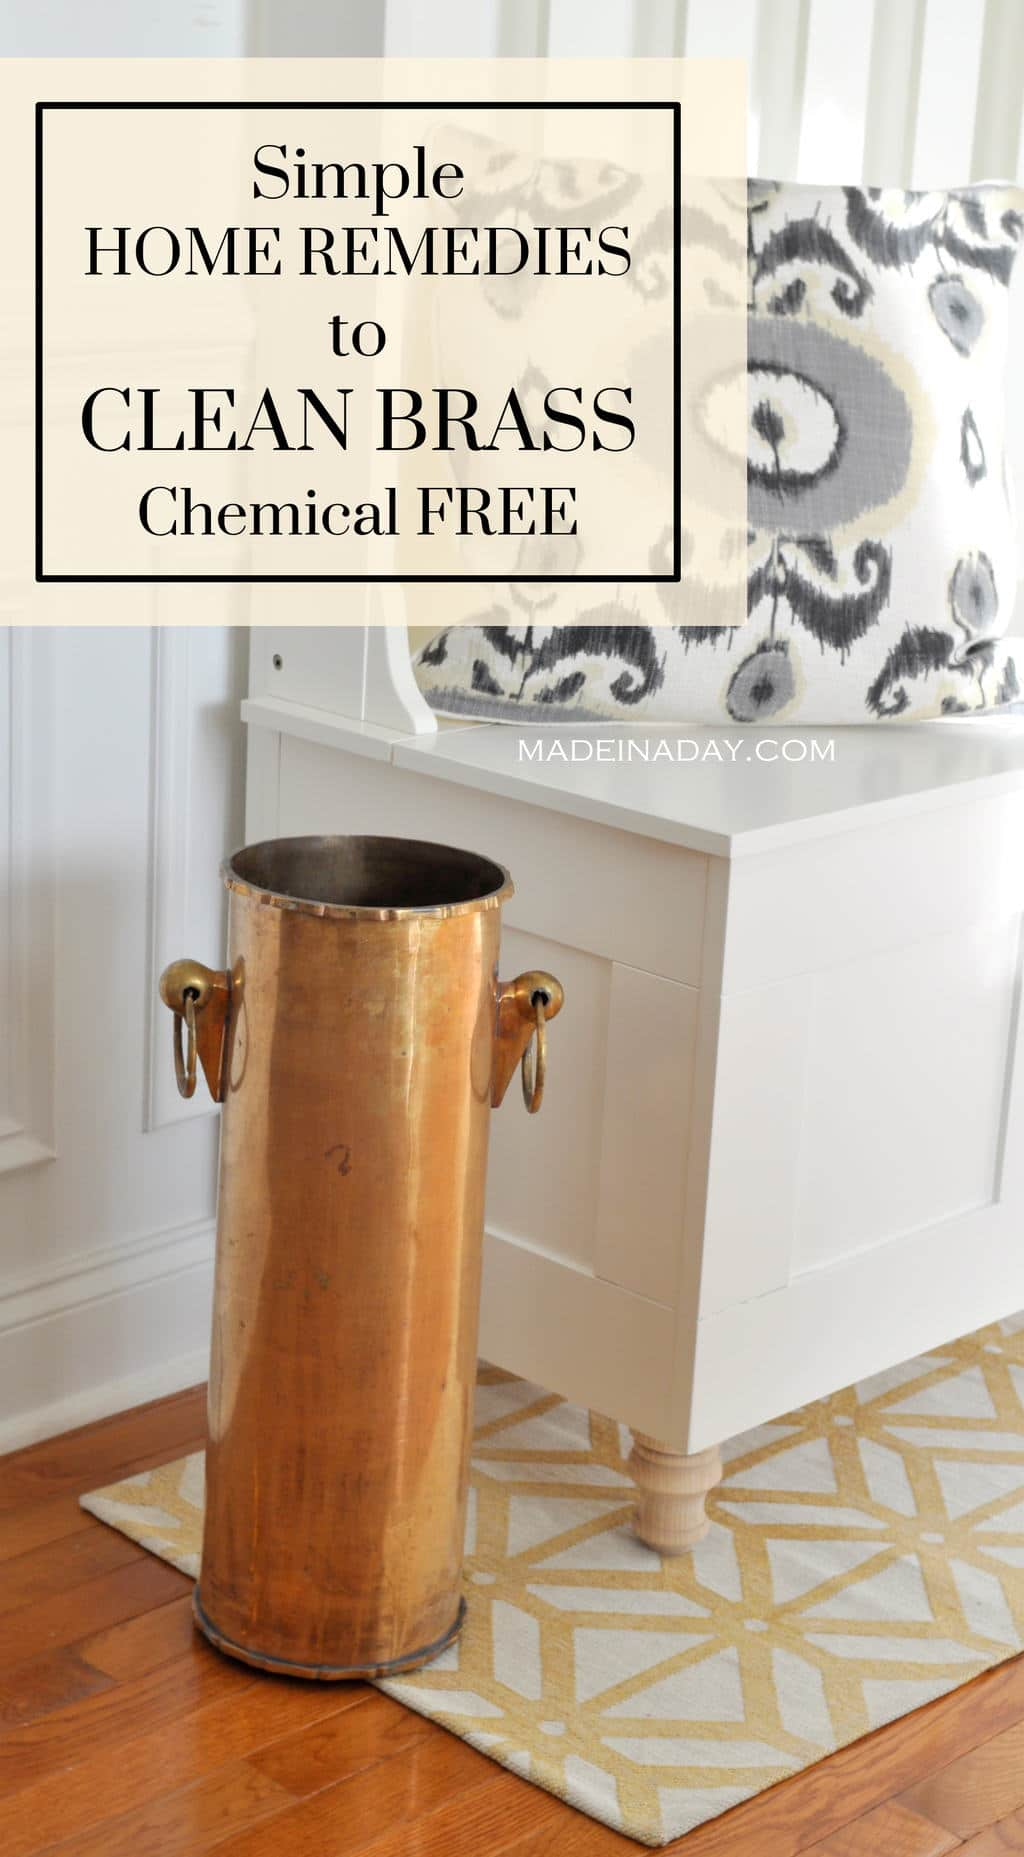 Super easy way to clean brass without going to the store! Salt, vinegar and ketchup to clean brass, home remedies to clean brass, #clean #homeremedies